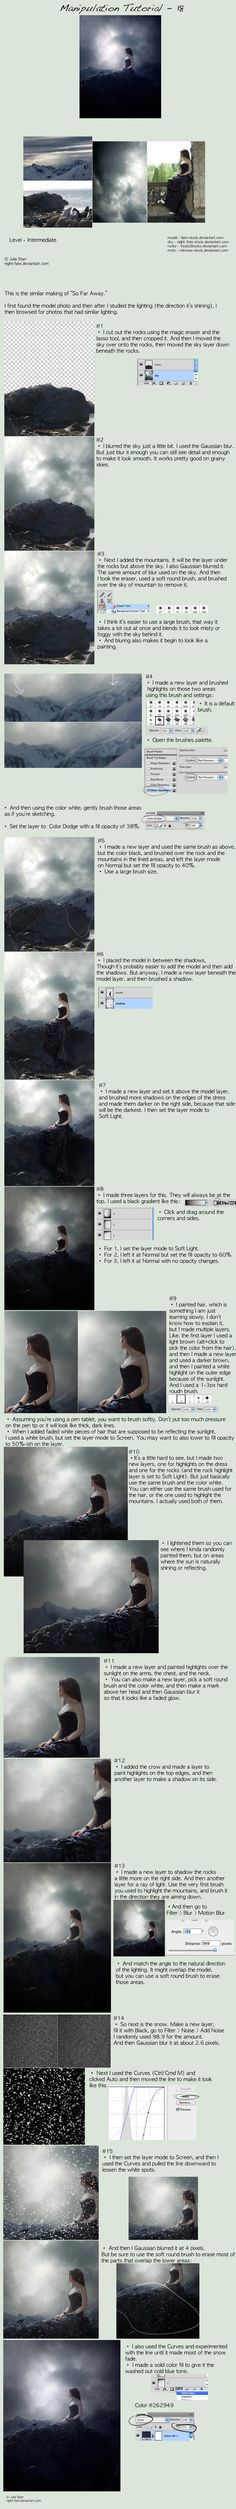 Photomanipulation Tutorial 18 by night-fate.deviantart.com on @deviantART